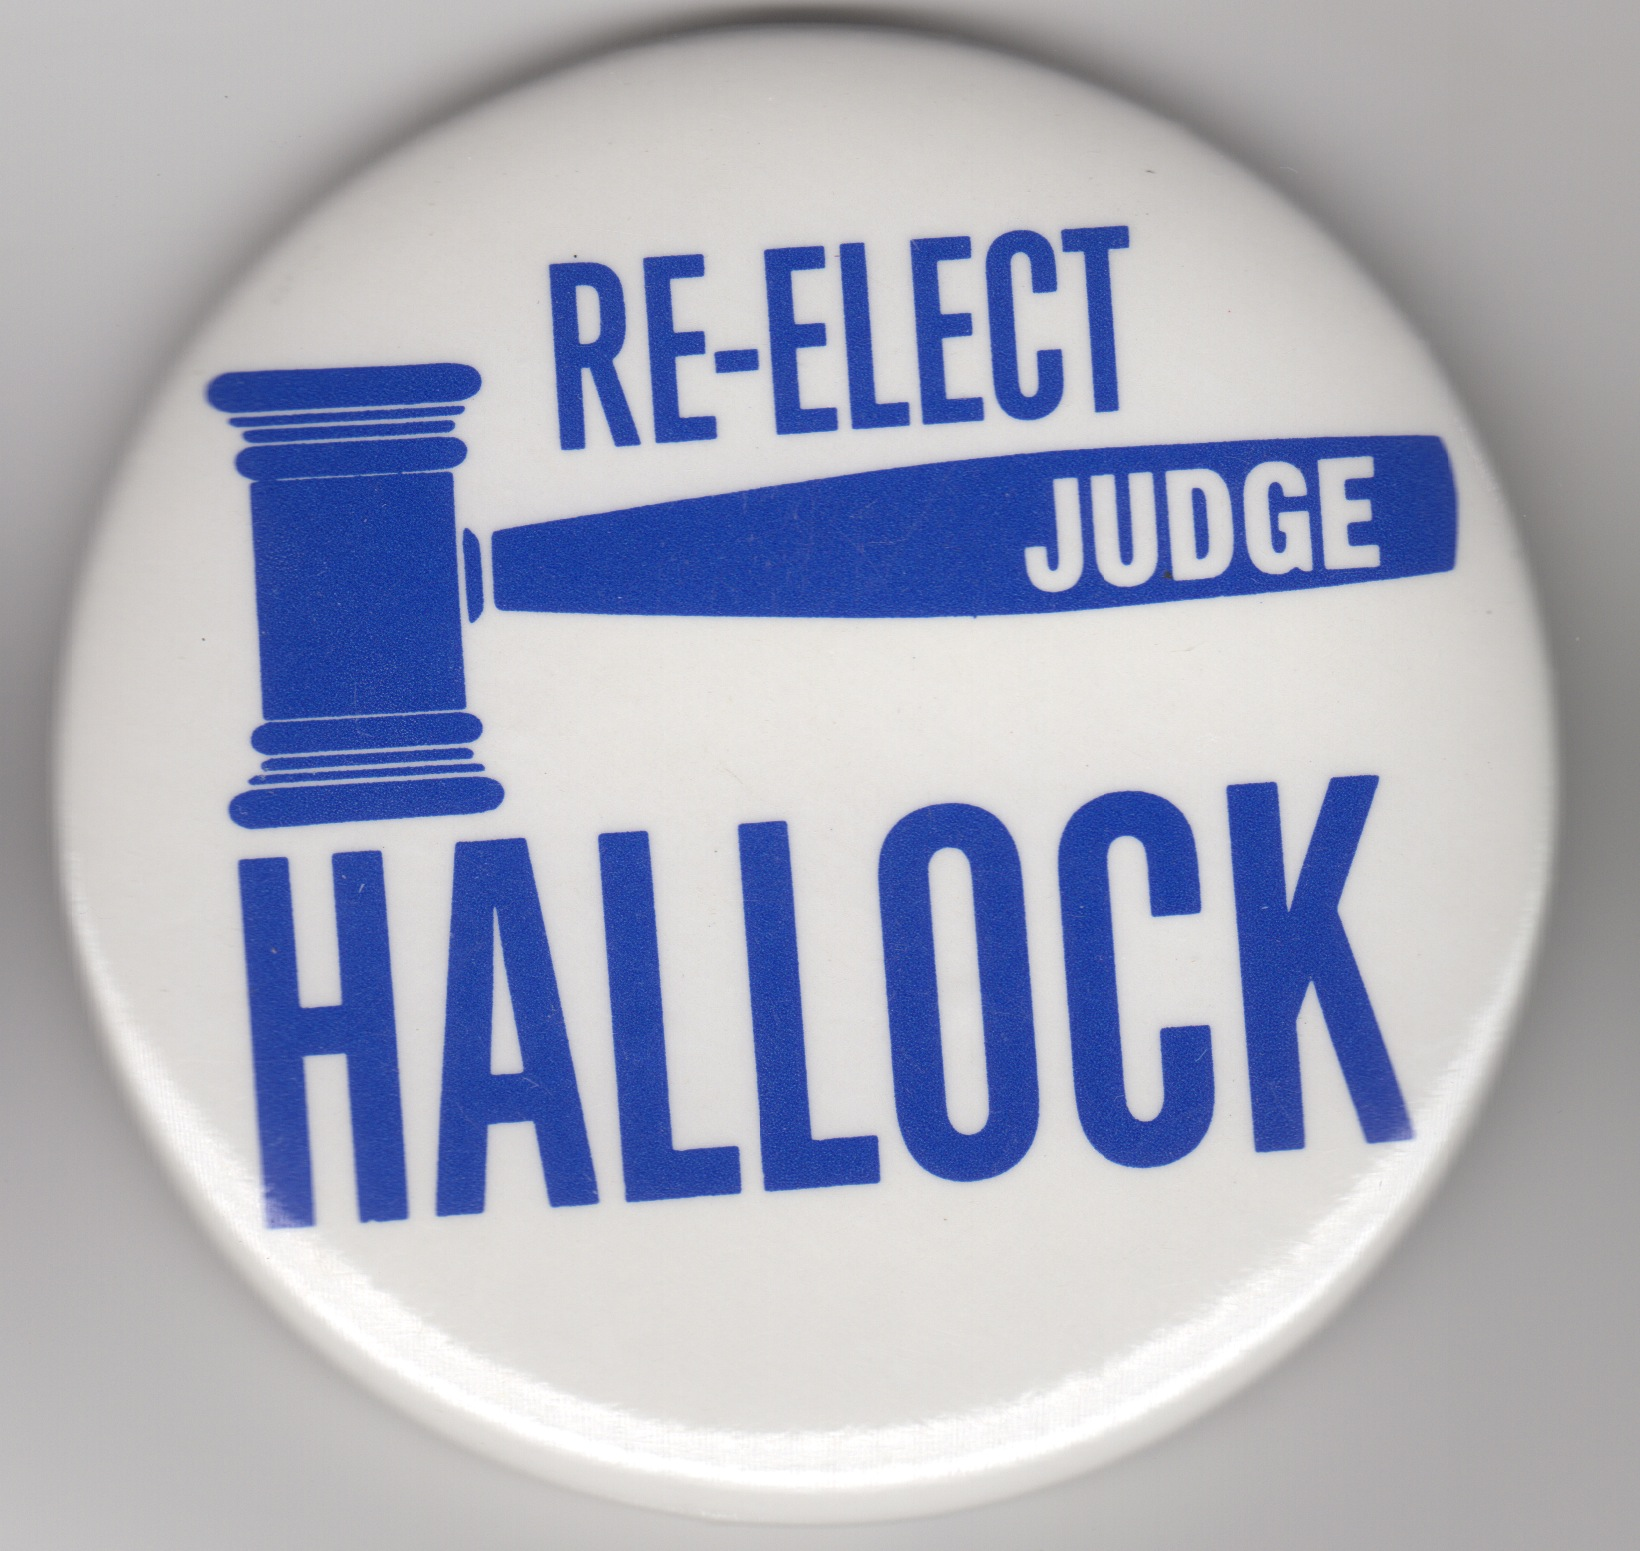 OHJudge-HALLOCK01.jpeg